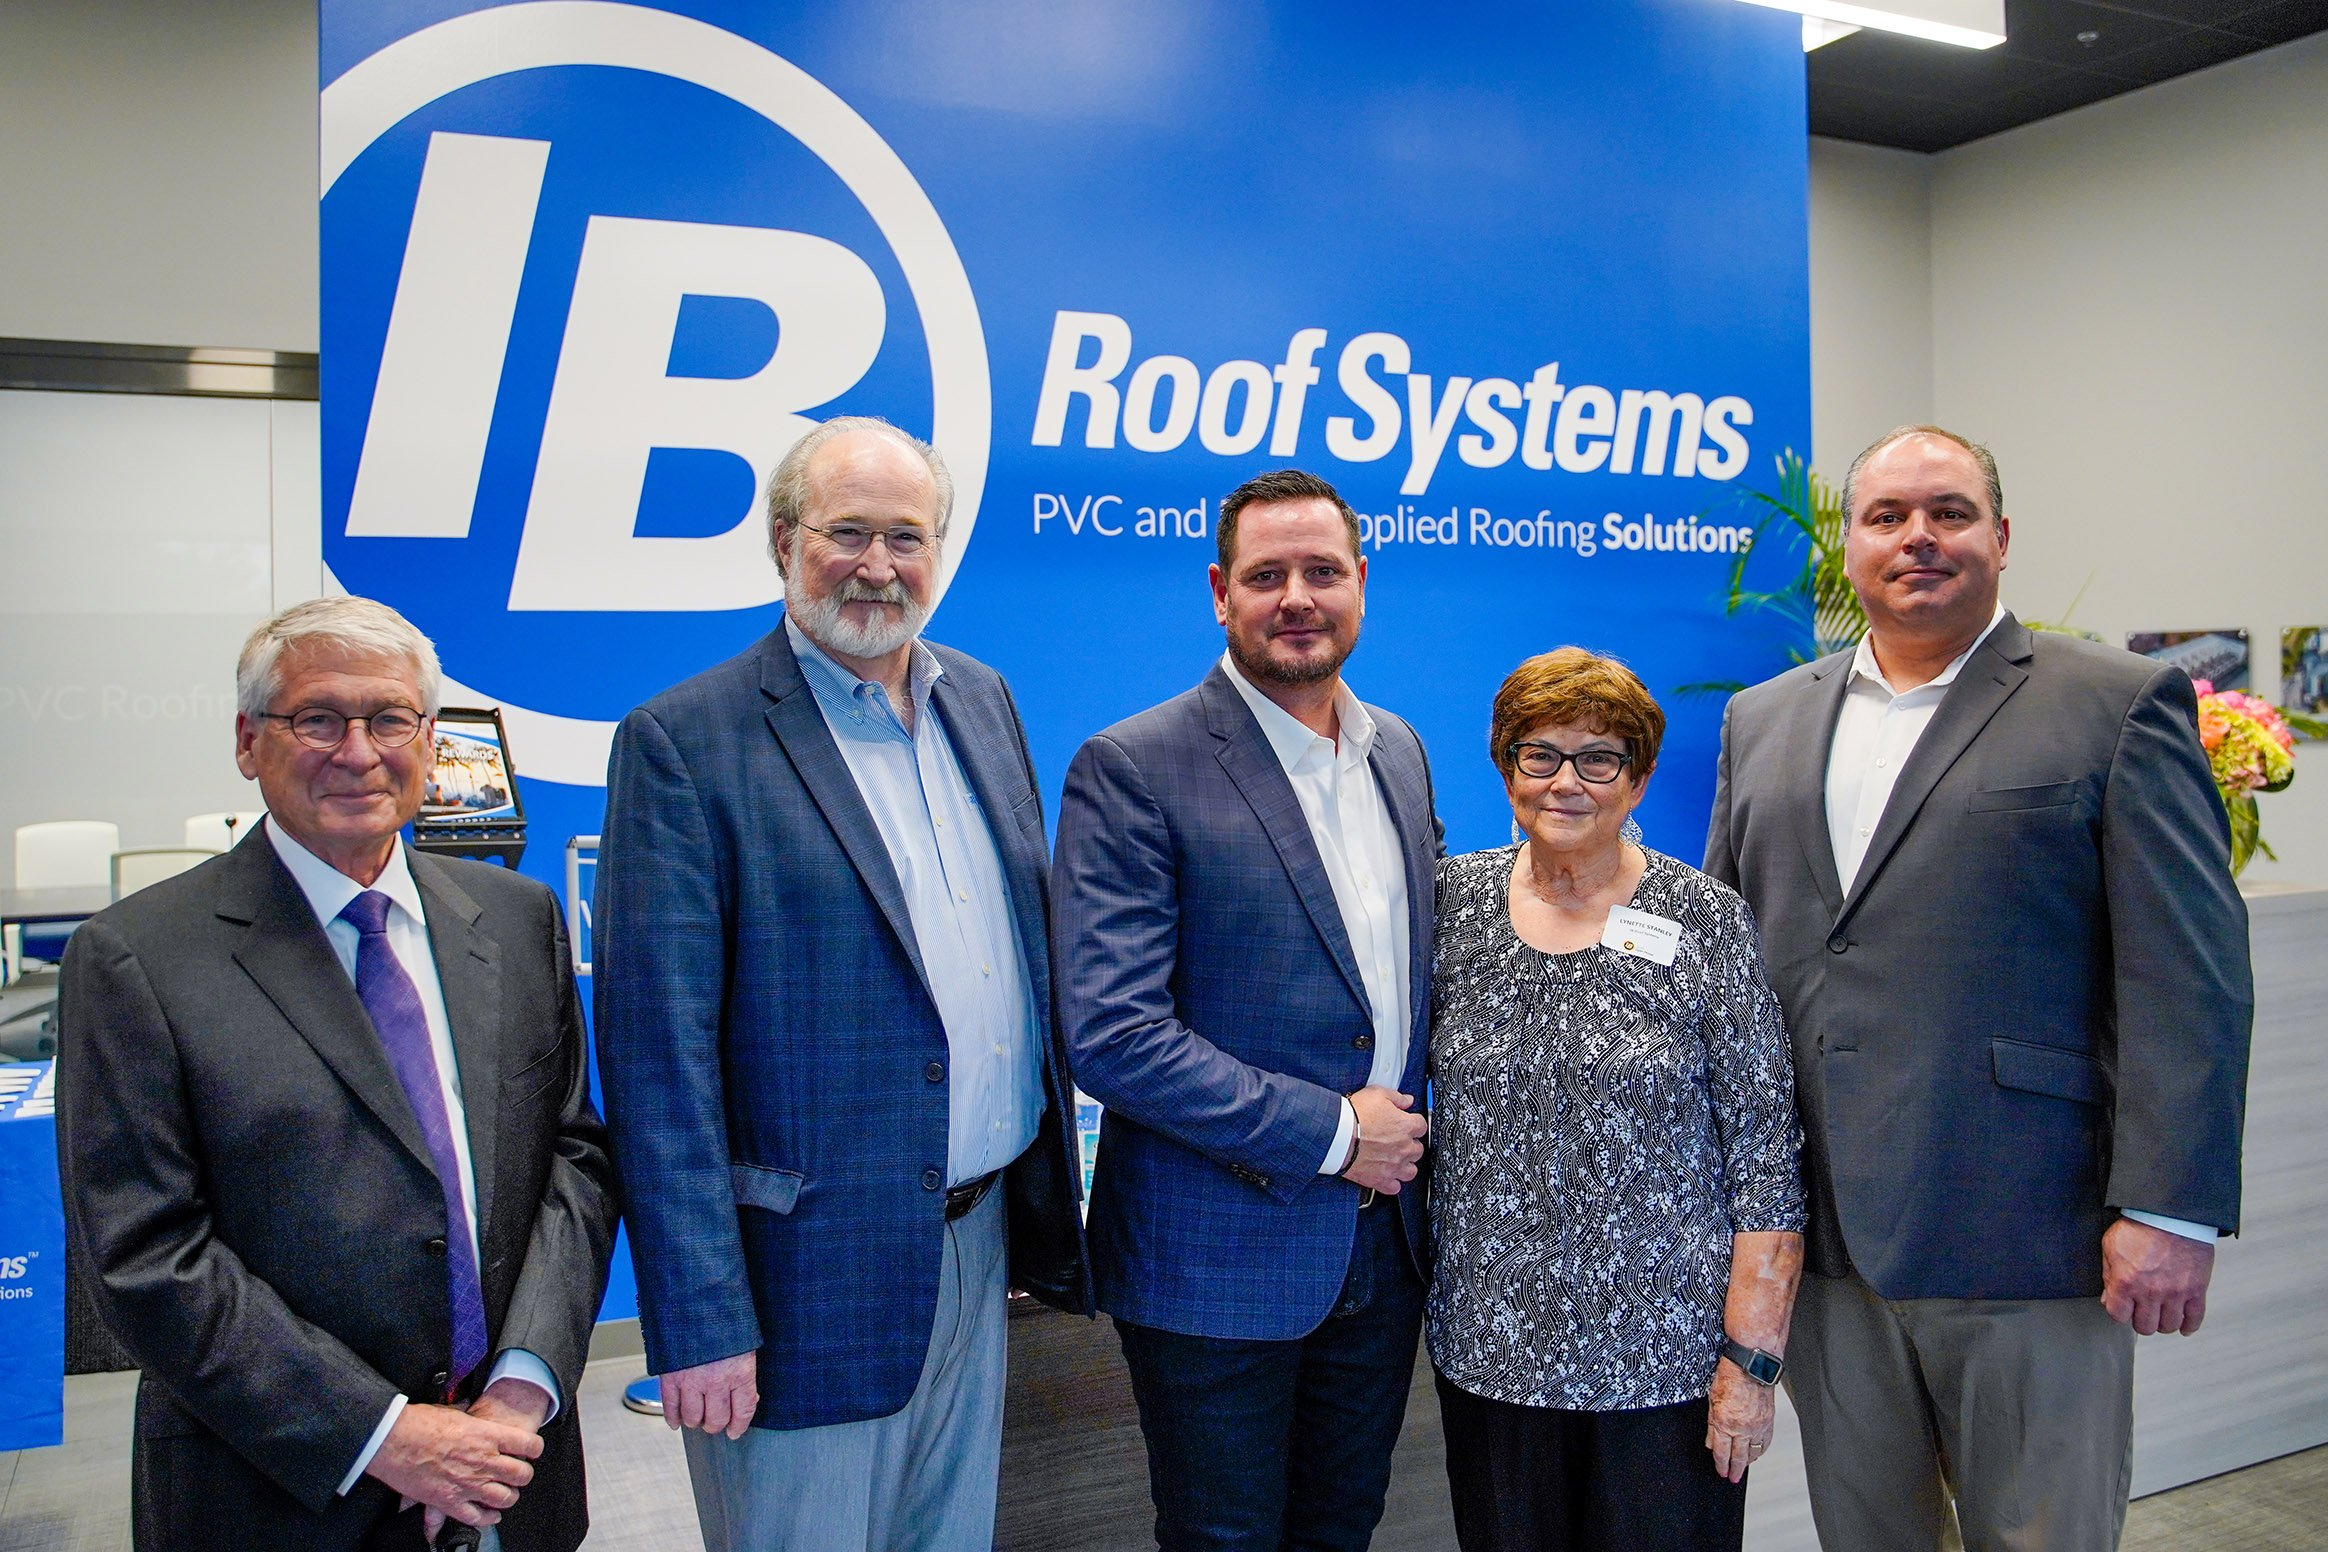 IB Roof Systems Honorees